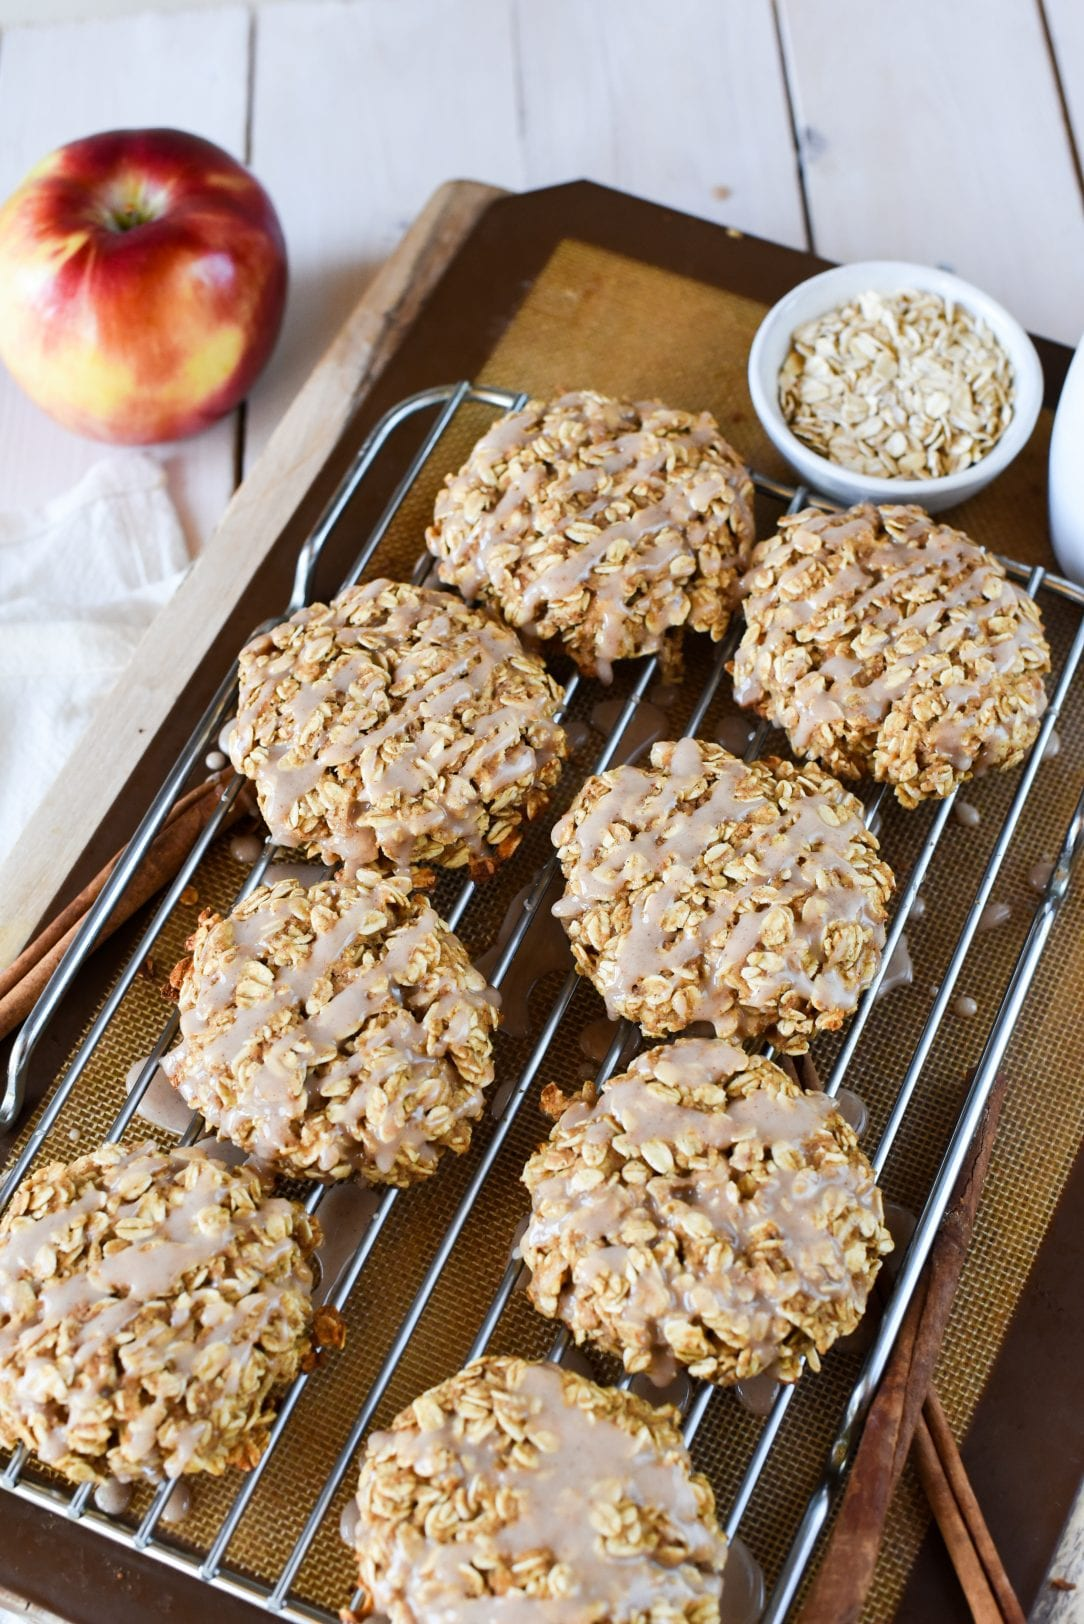 Apple Cinnamon Oat Breakfast Cookies